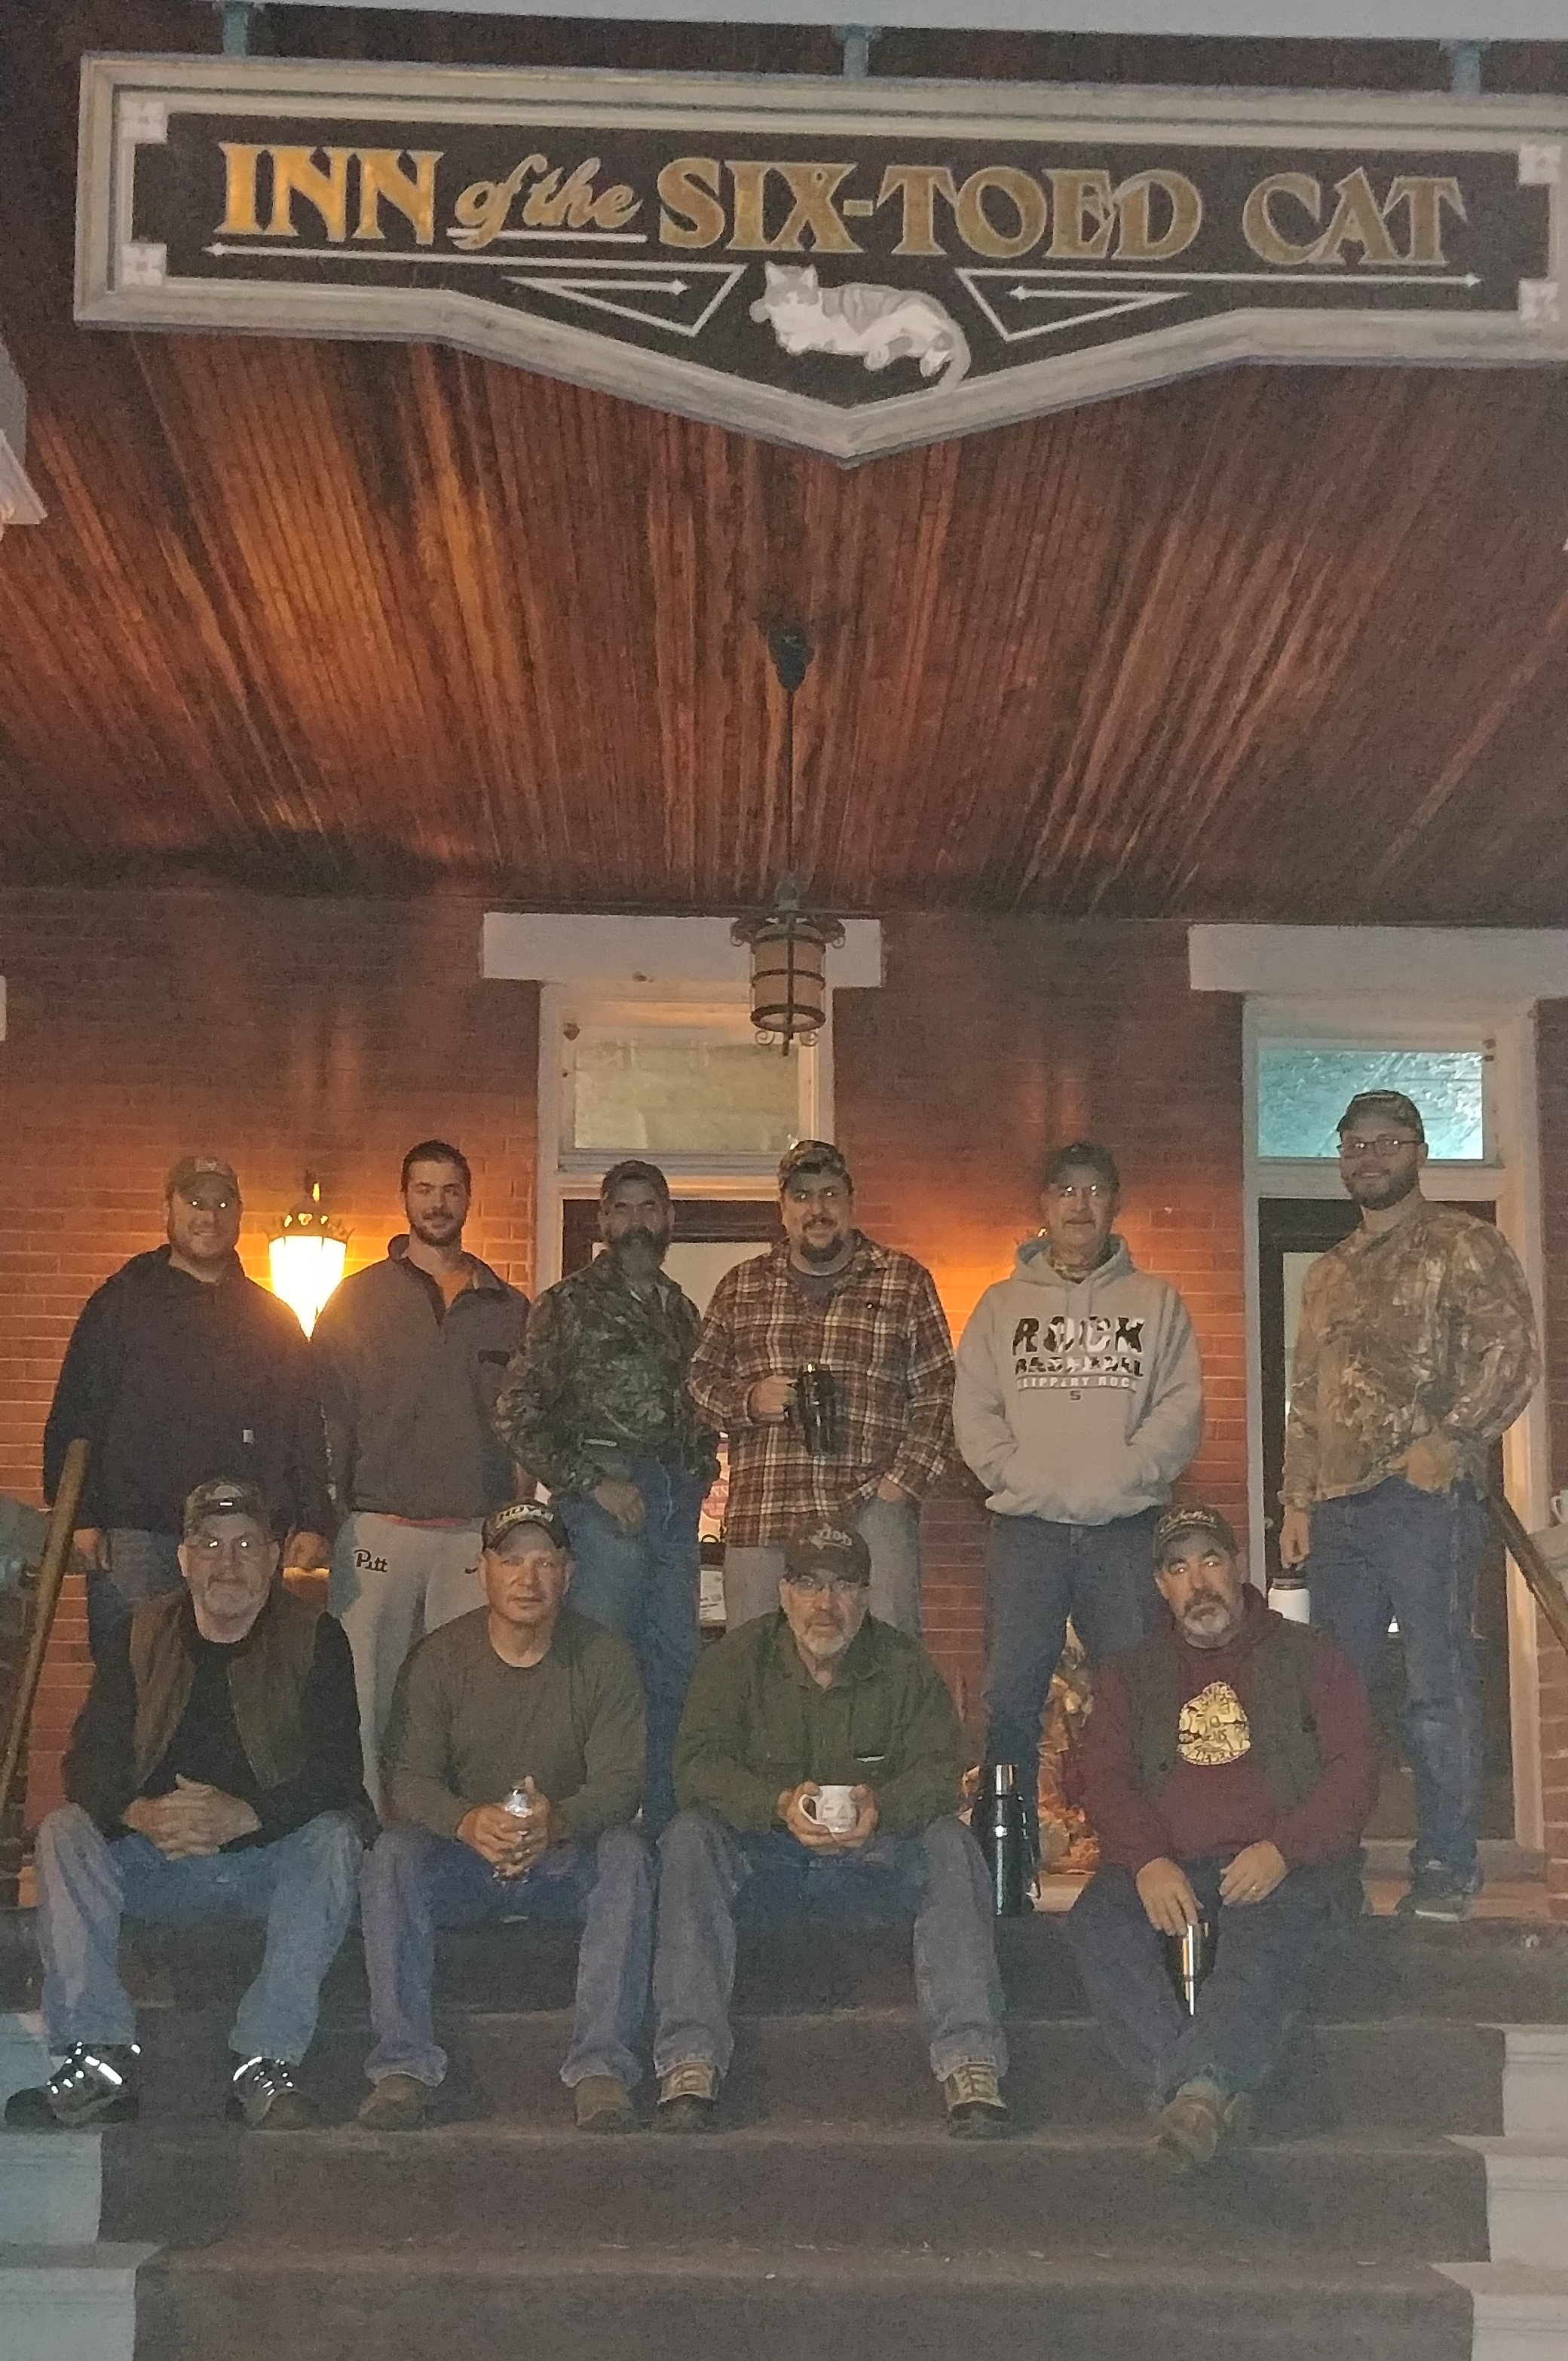 Schneider family's 2017 Brothers & Others Hunt on the steps of the Inn.